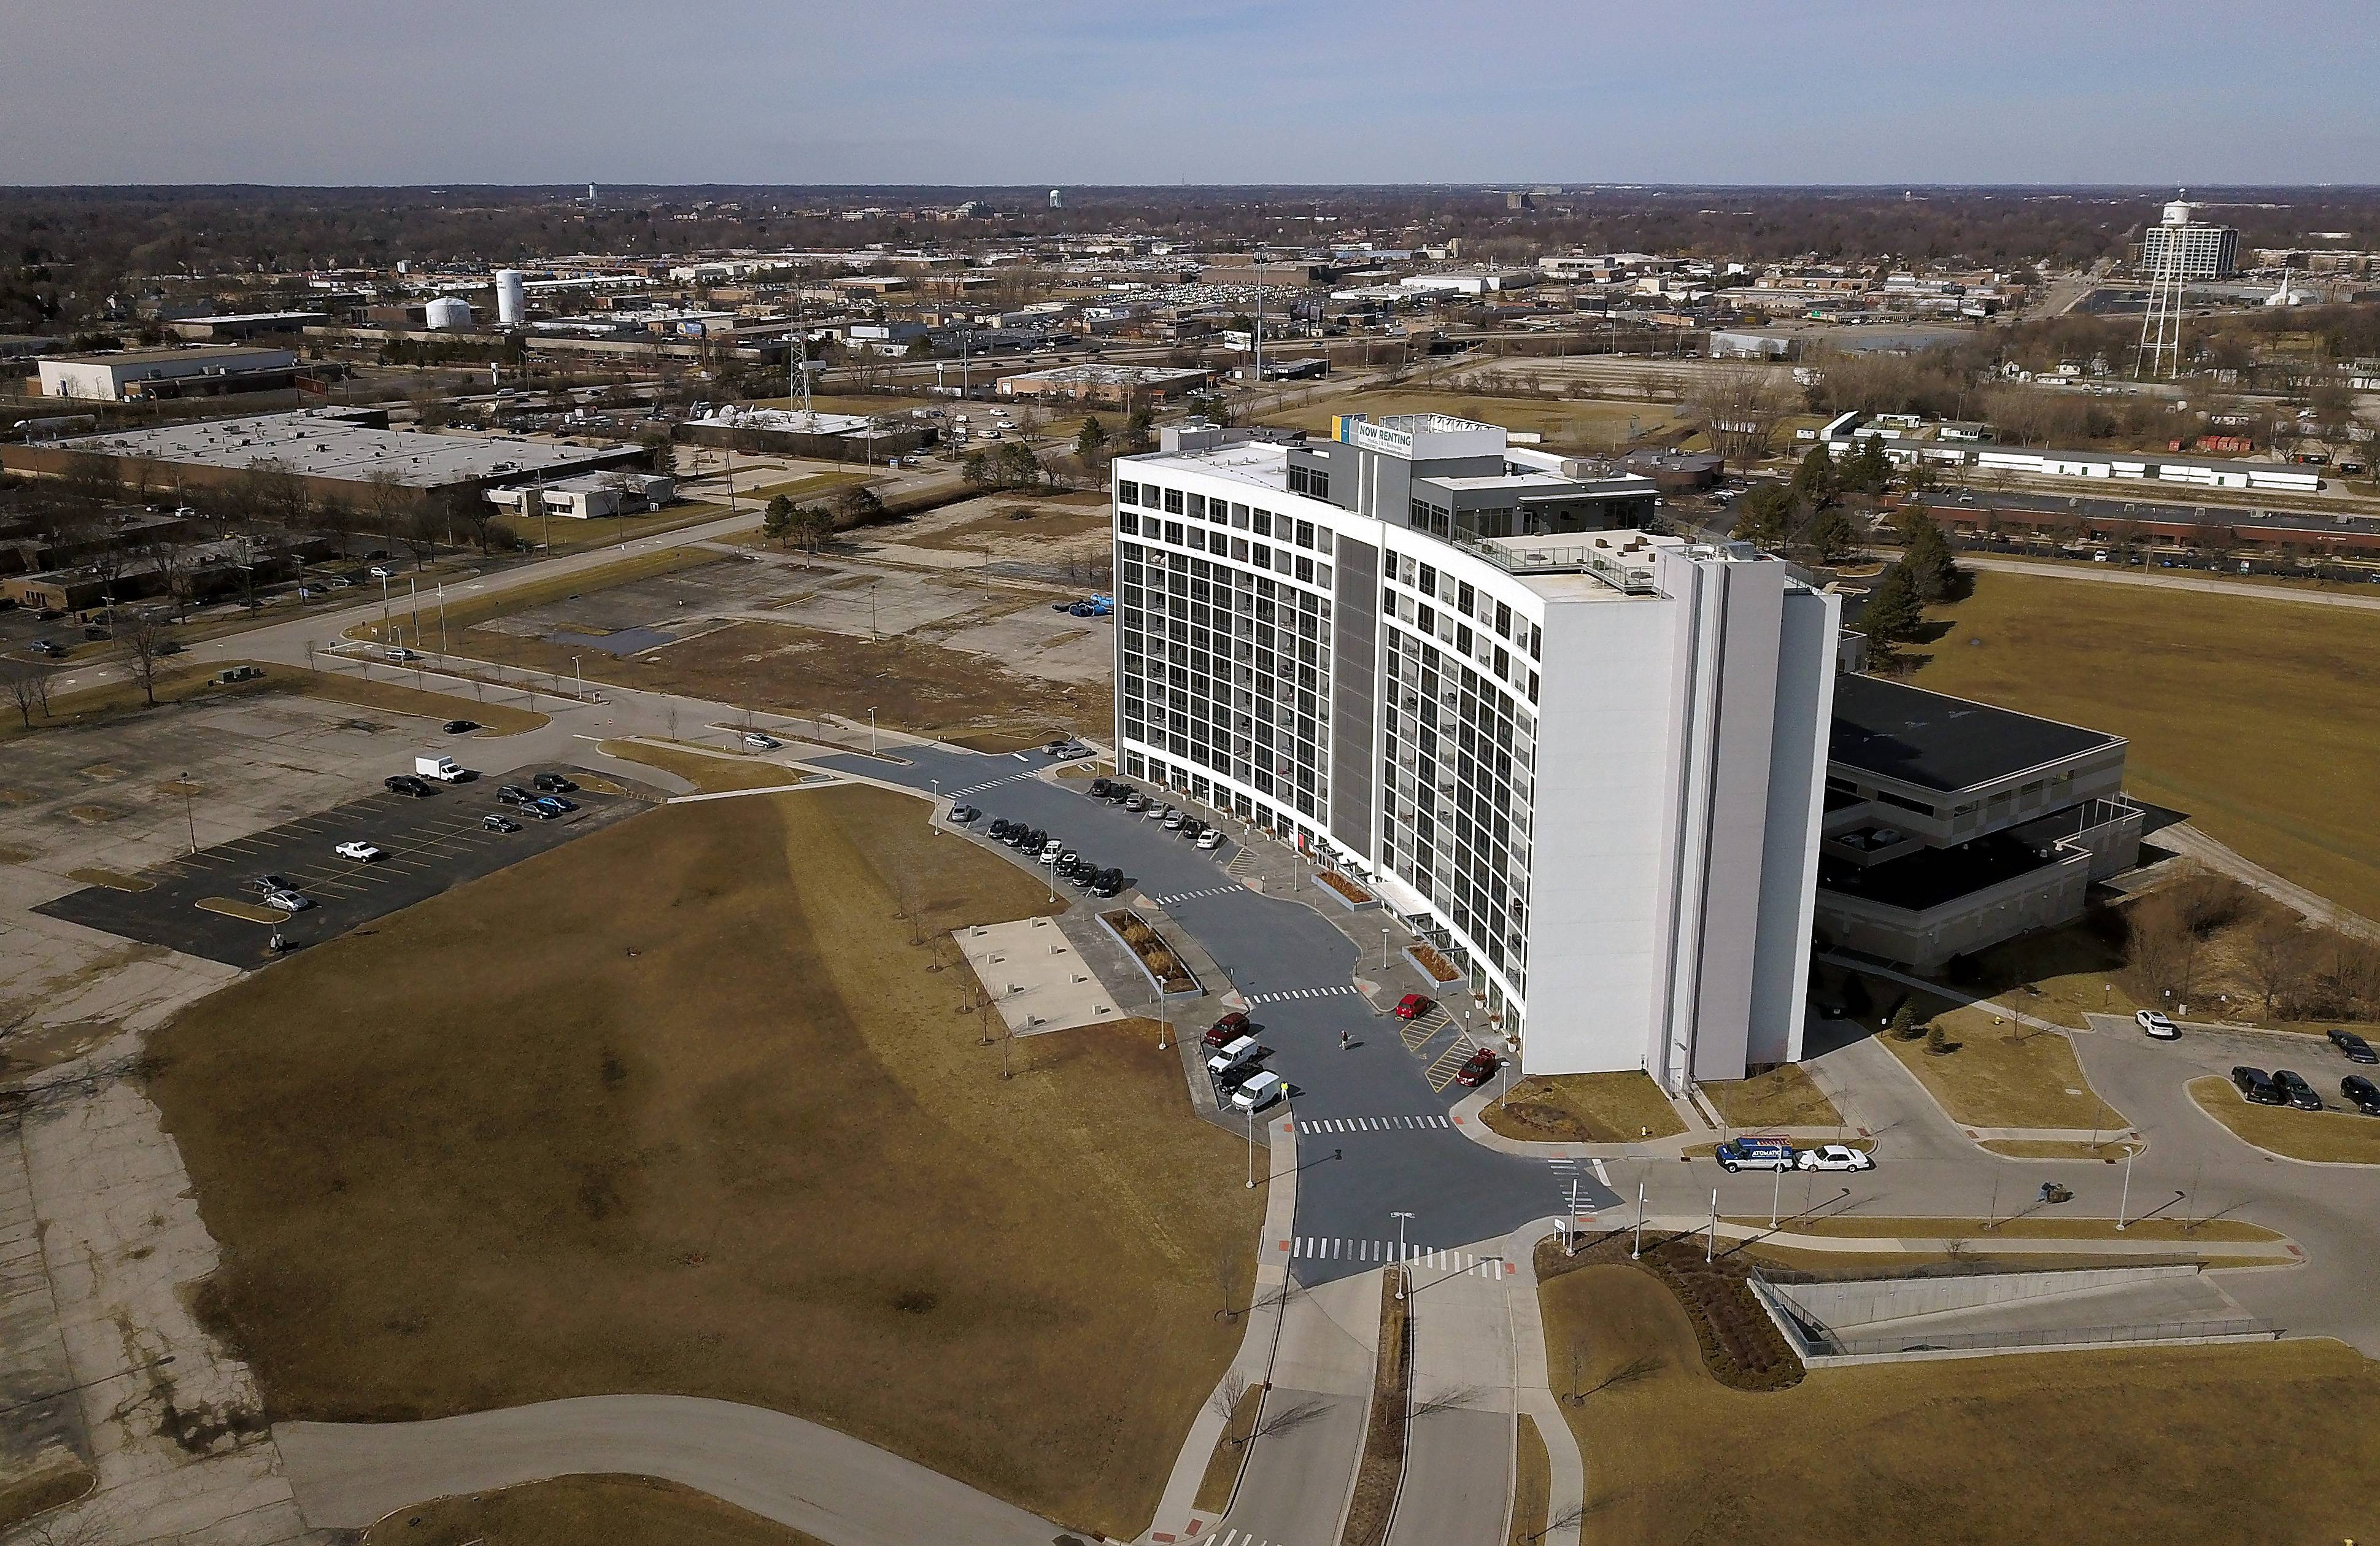 Climbing wall, boutique hotel now part of Arlington Downs project